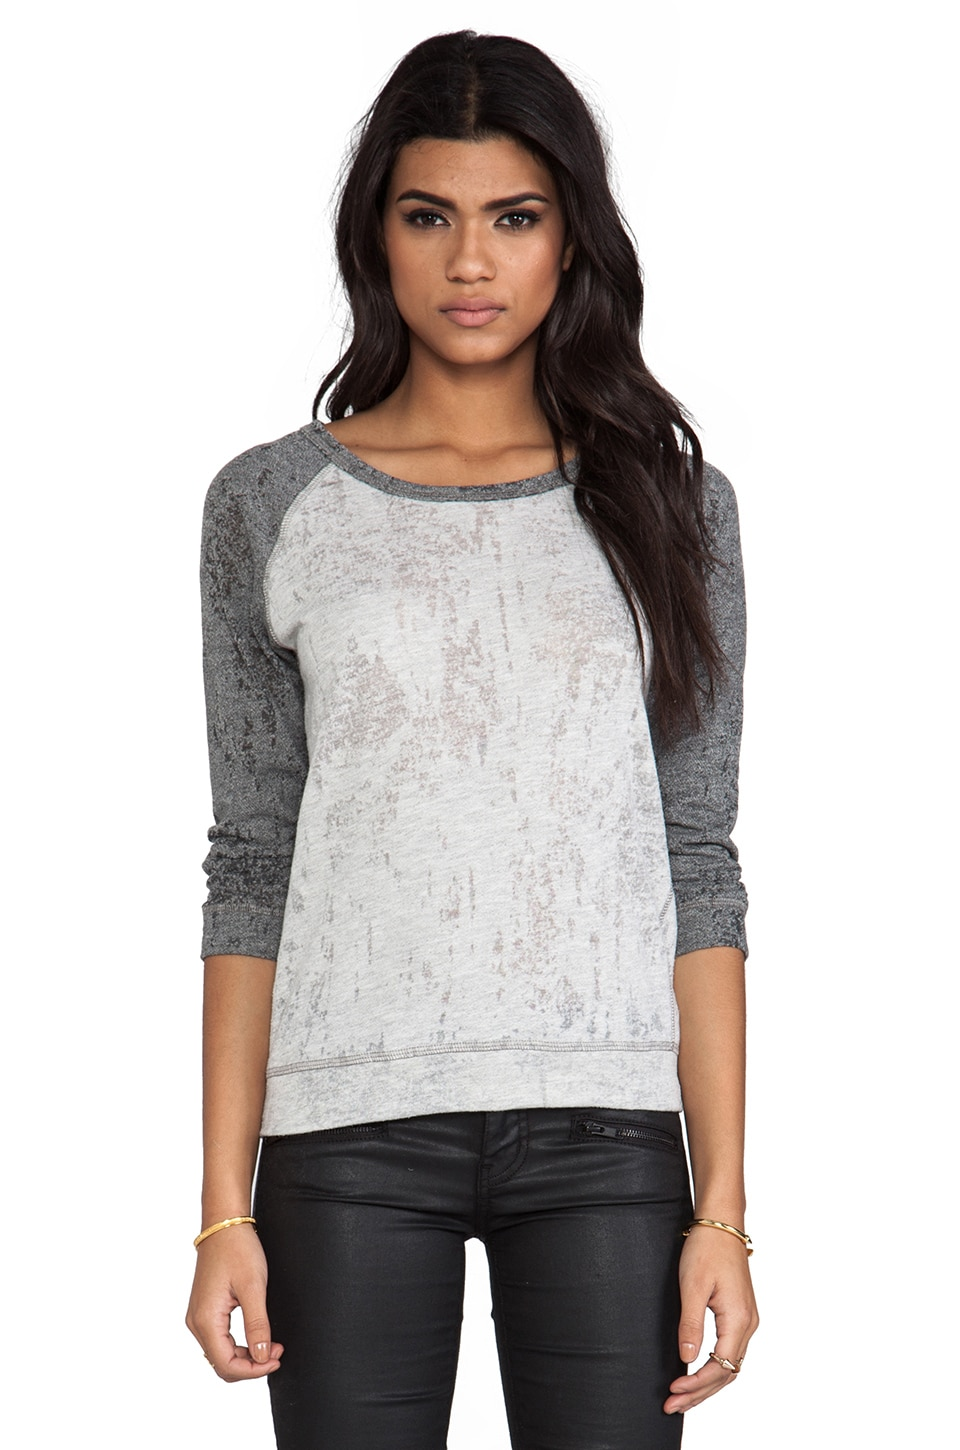 Velvet by Graham & Spencer Velvet Burnout Bobbie Knit in Heather Grey